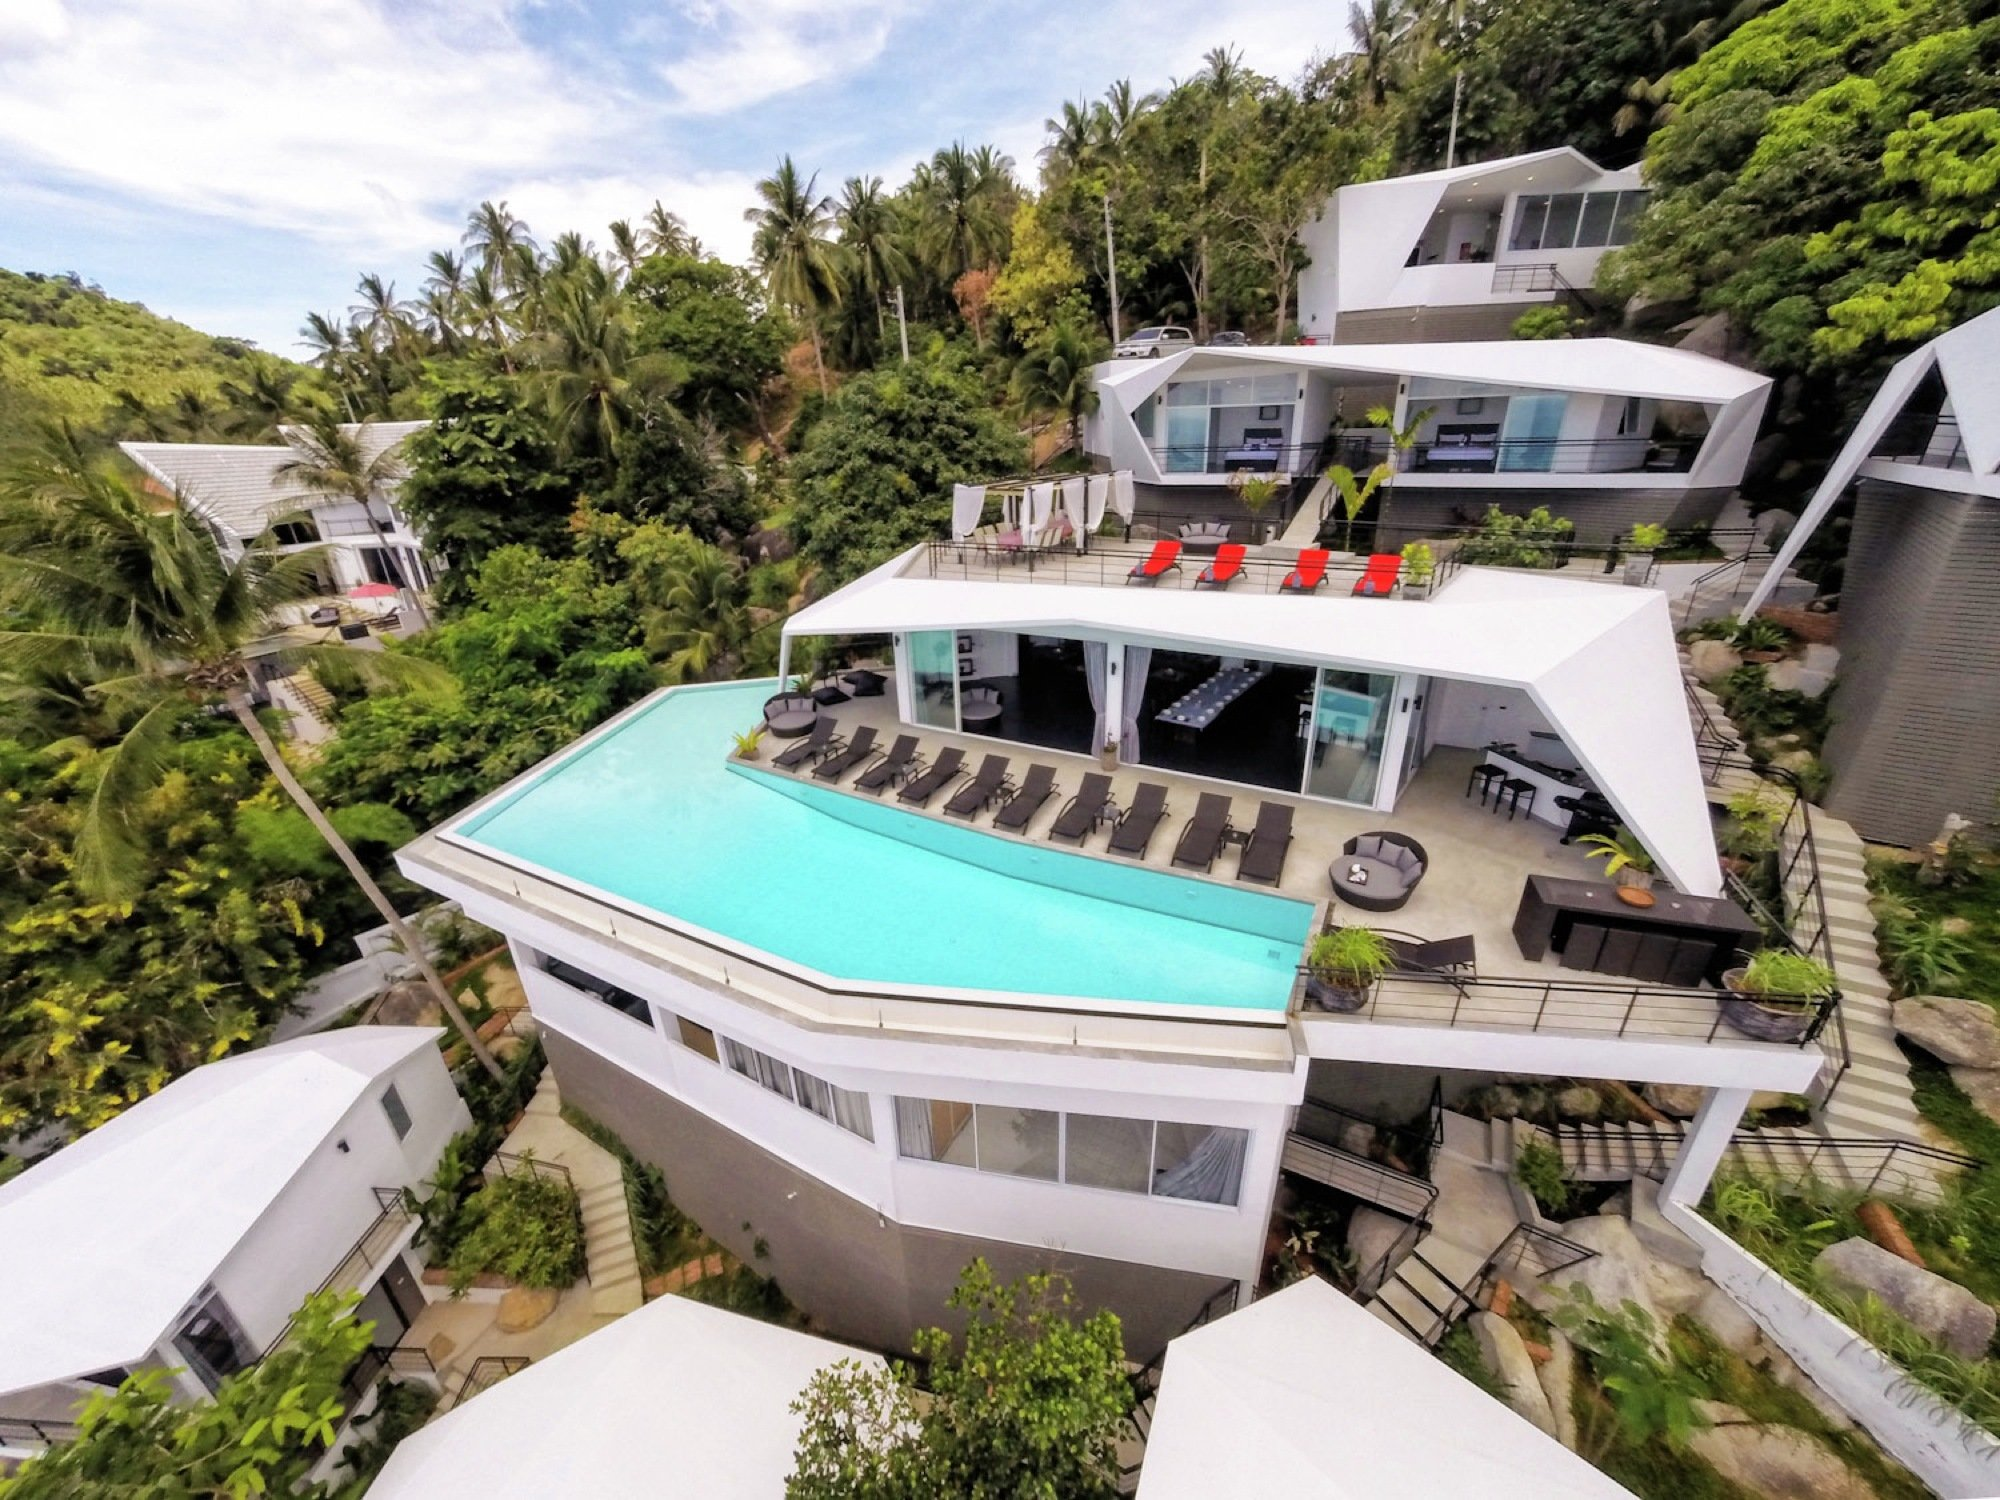 Suan Kachamudee boutique resort designed by Sicart & Smith Architects-01